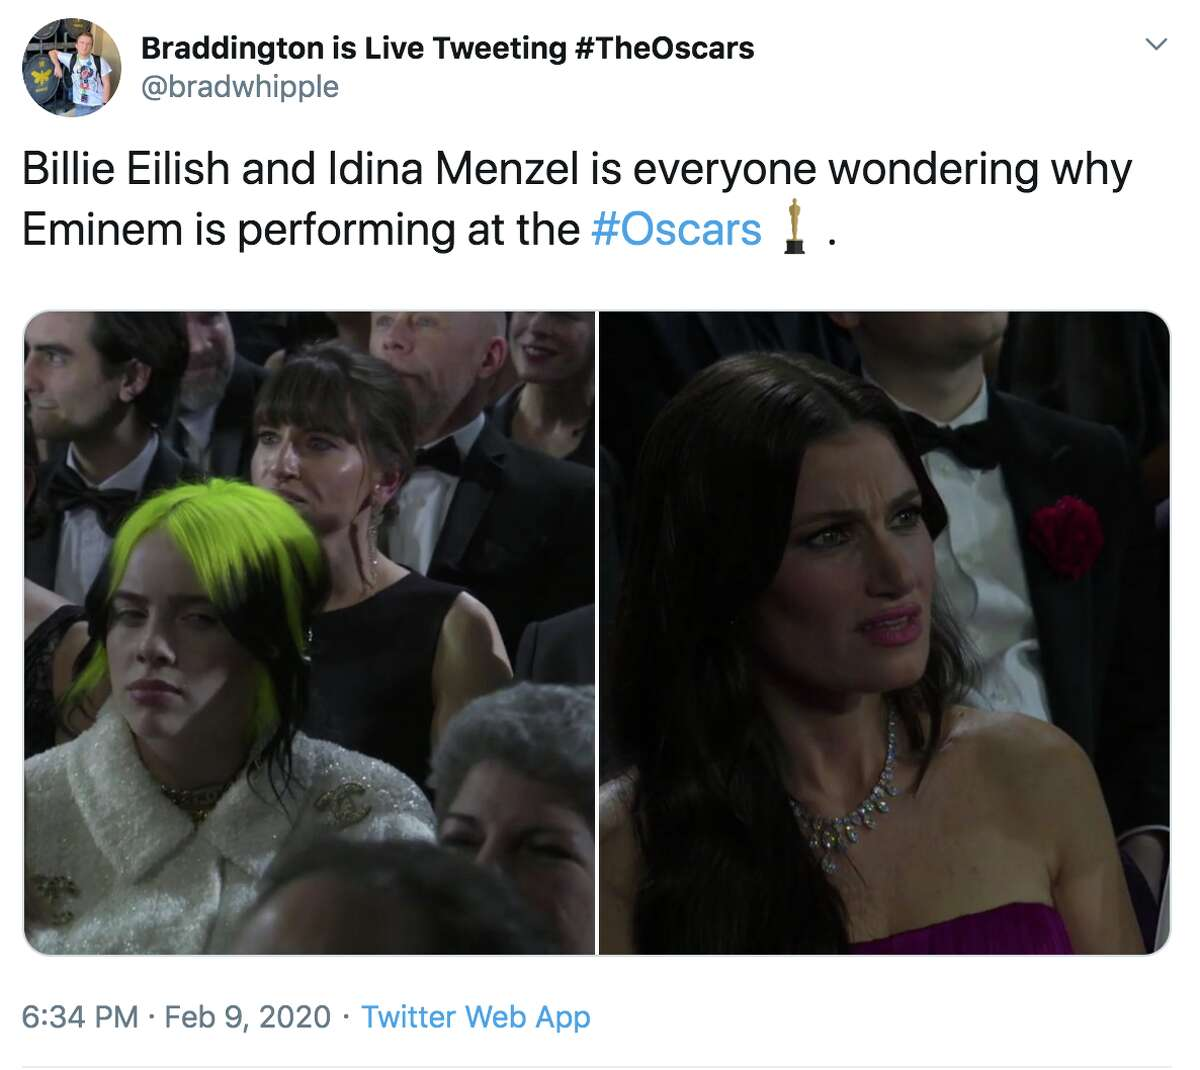 Twitter hilariously reacts to Eminem's surprise performance at the Oscars.